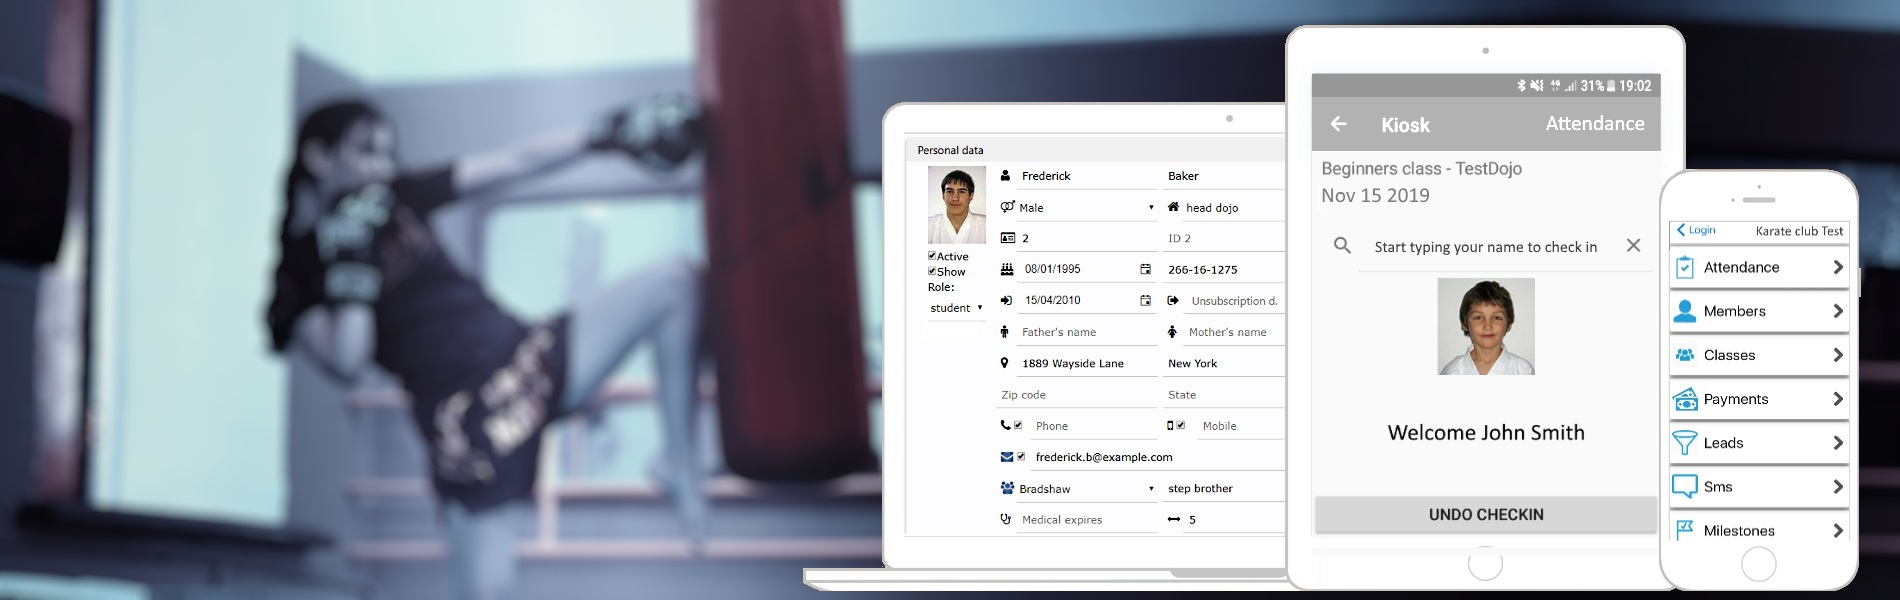 Software for martial art school management and attendance